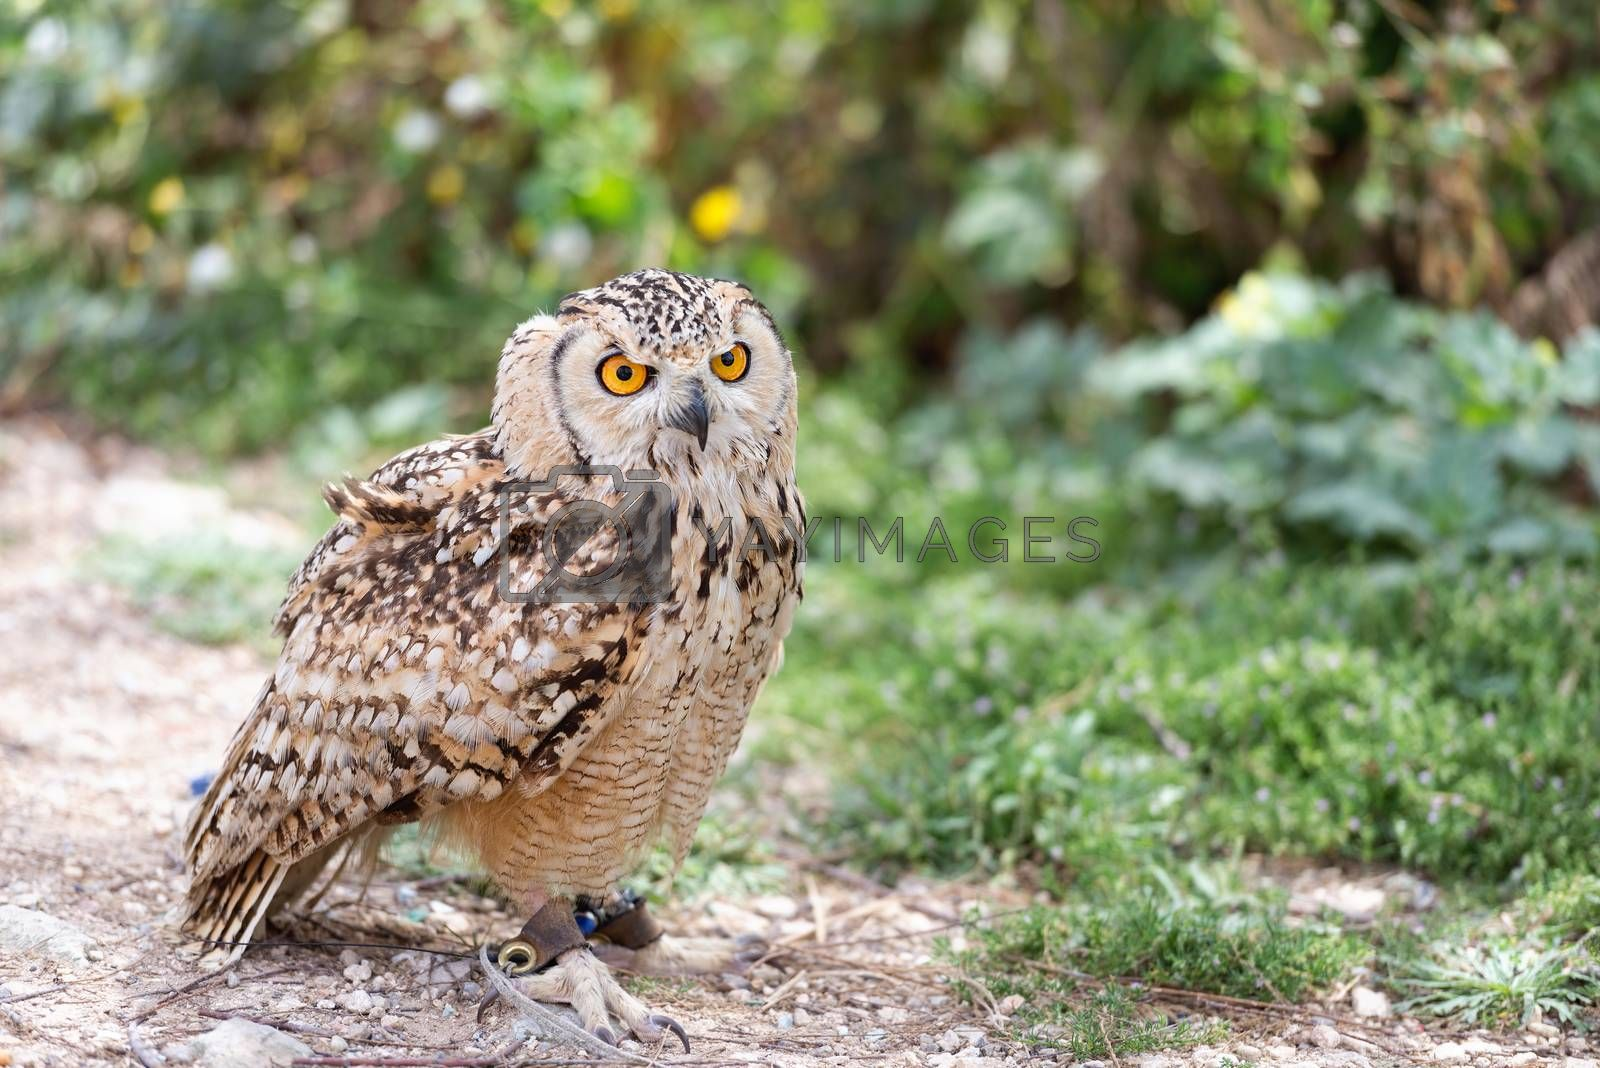 Royalty free image of Owl on leash with copy space by Nanisimova